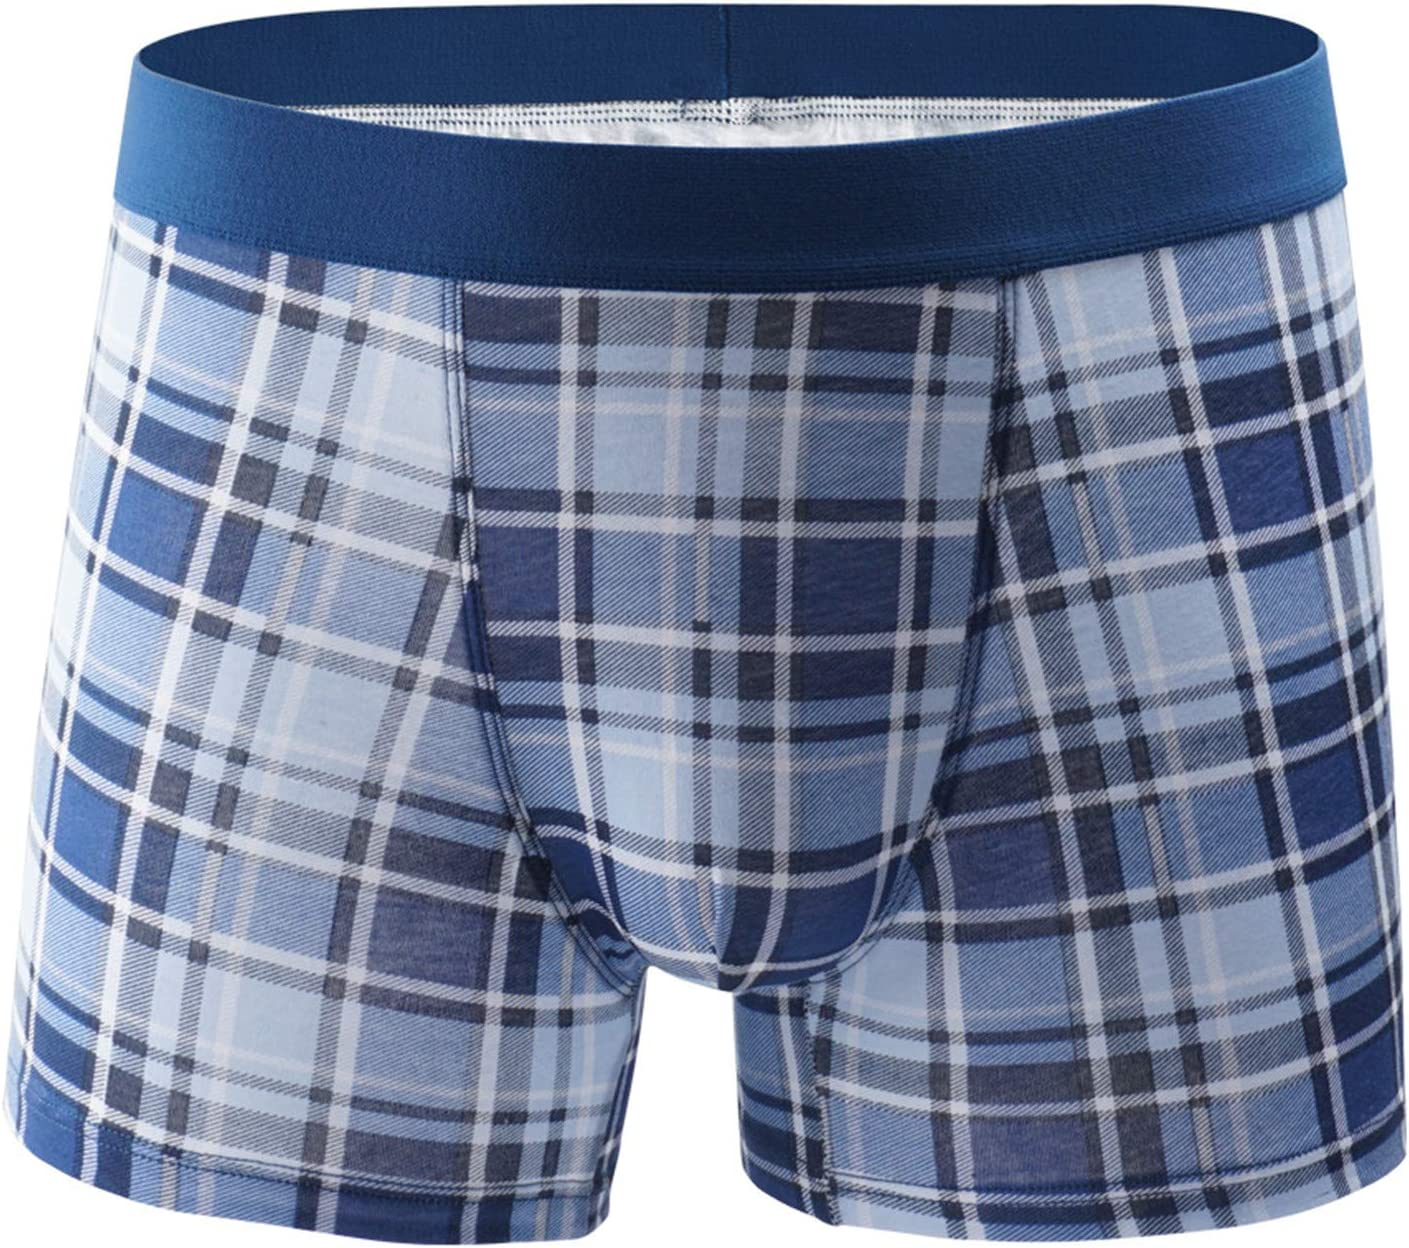 Clearance Men's Underwear - Boxer Briefs with Built-in Pouch Support Soft Breathable Lounge Shorts Underpants Clothing (Blue,Medium)